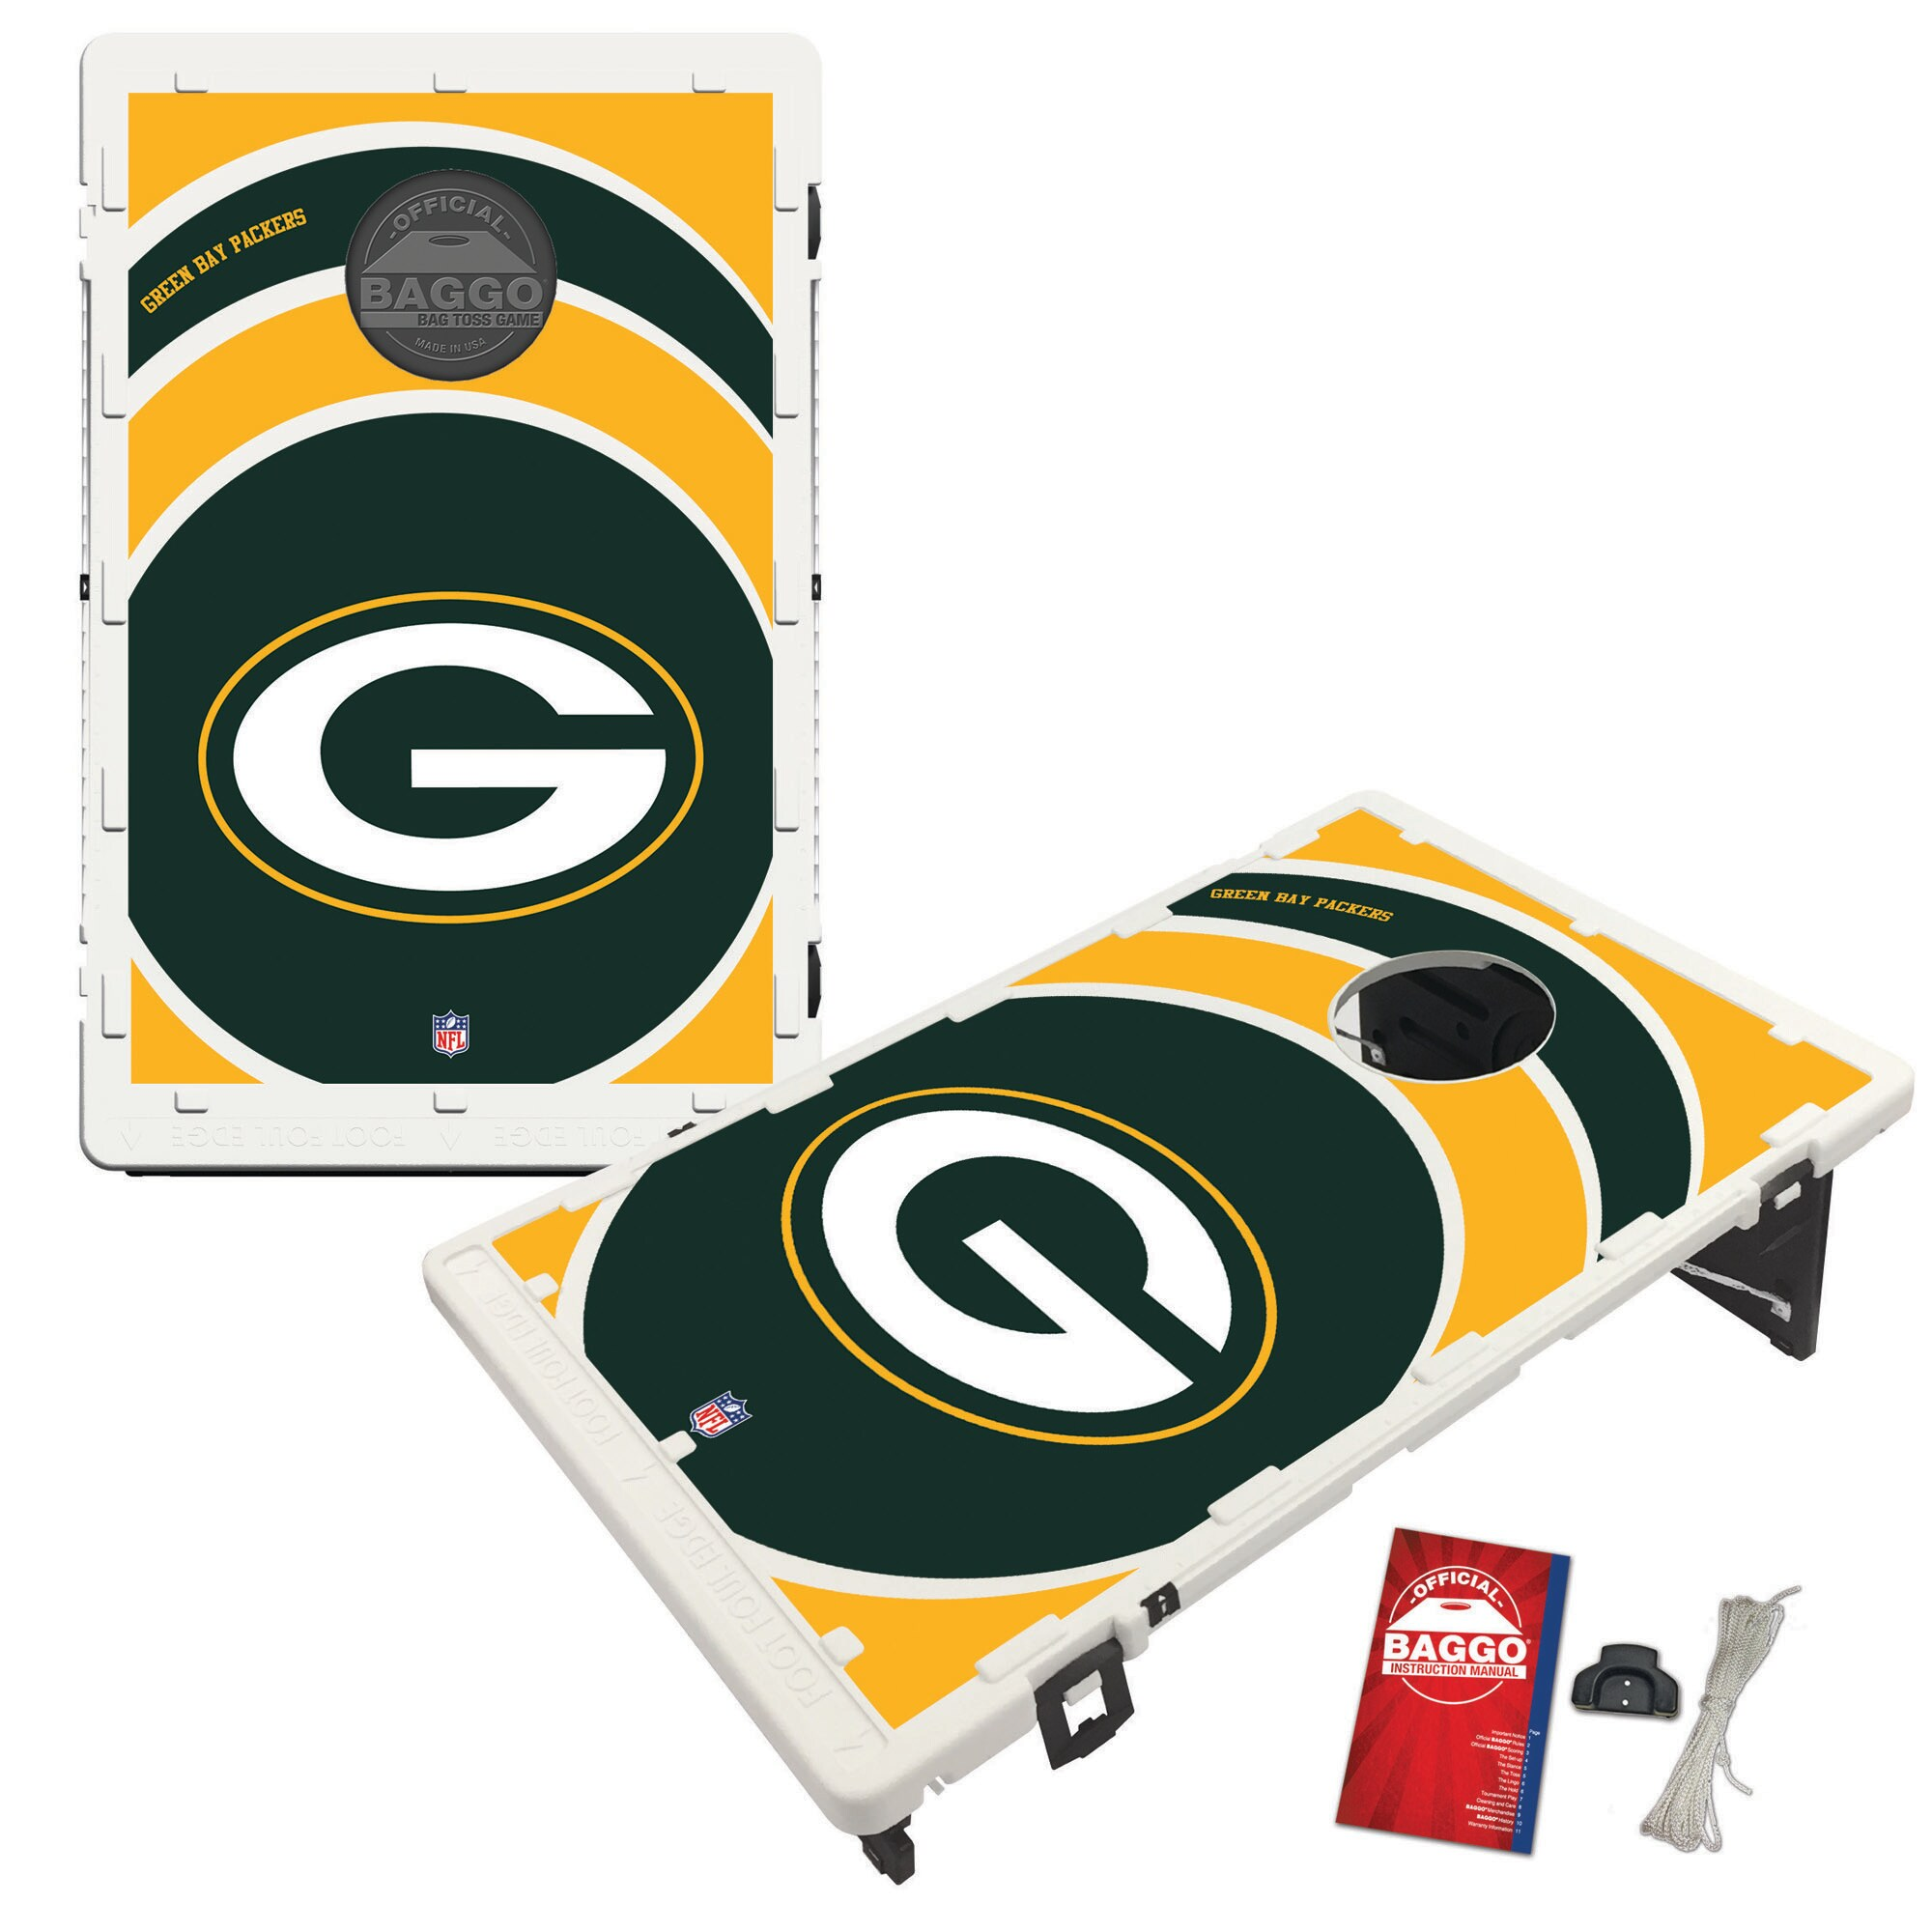 Green Bay Packers 2' x 3' BAGGO Vortex Cornhole Board Tailgate Toss Set